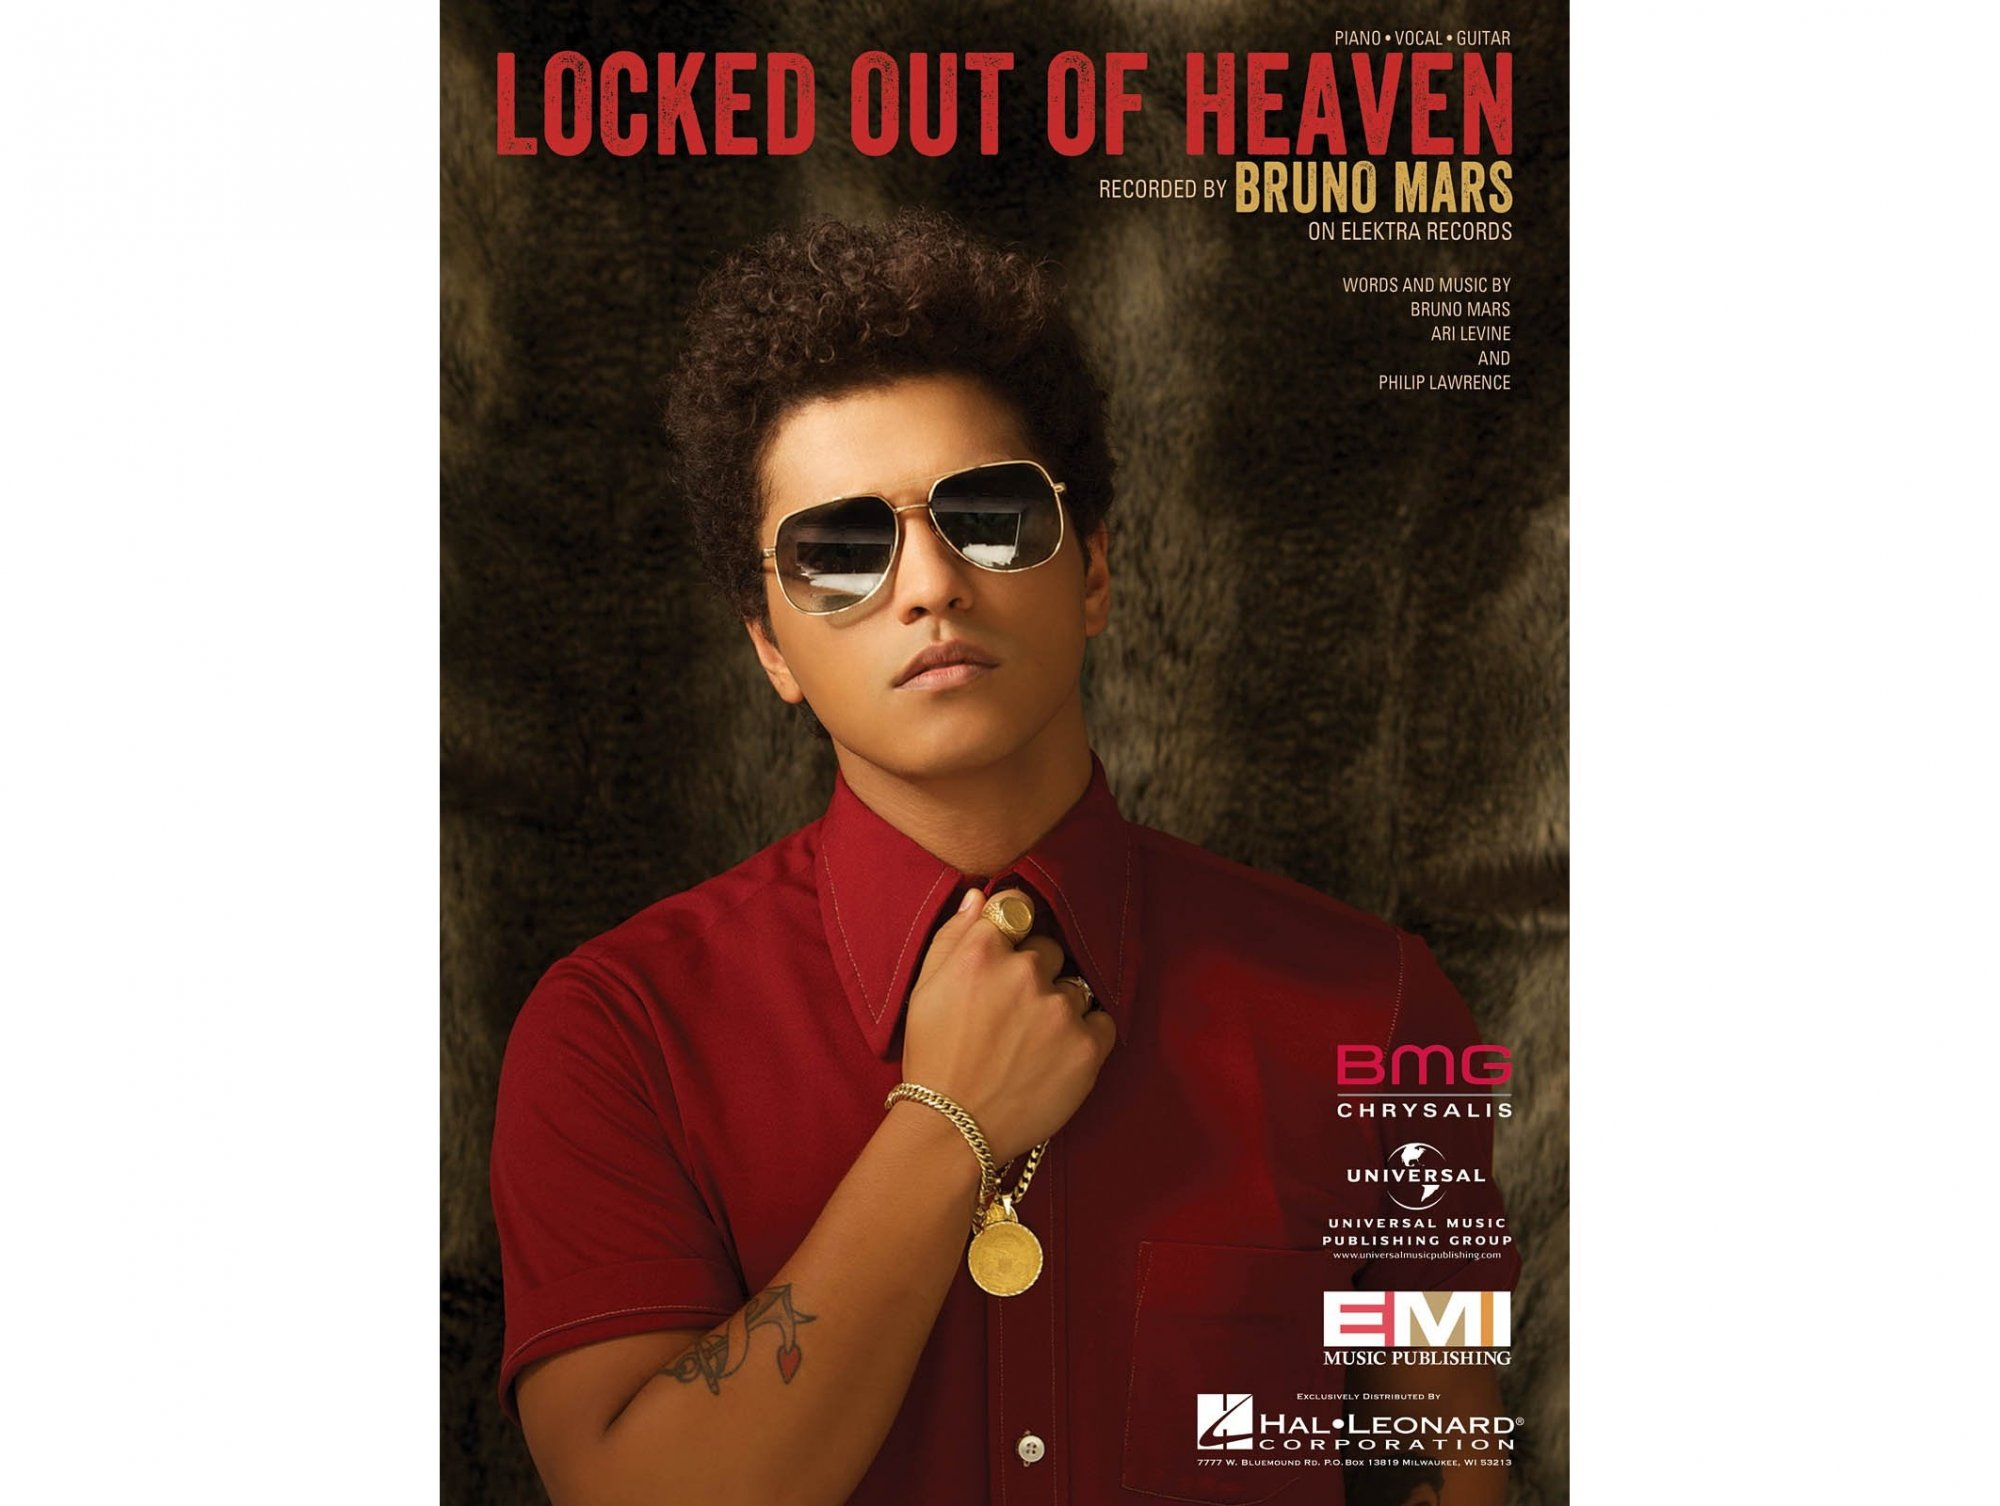 Bruno Mars Locked Out of Heaven Piano/Vocal/Guitar